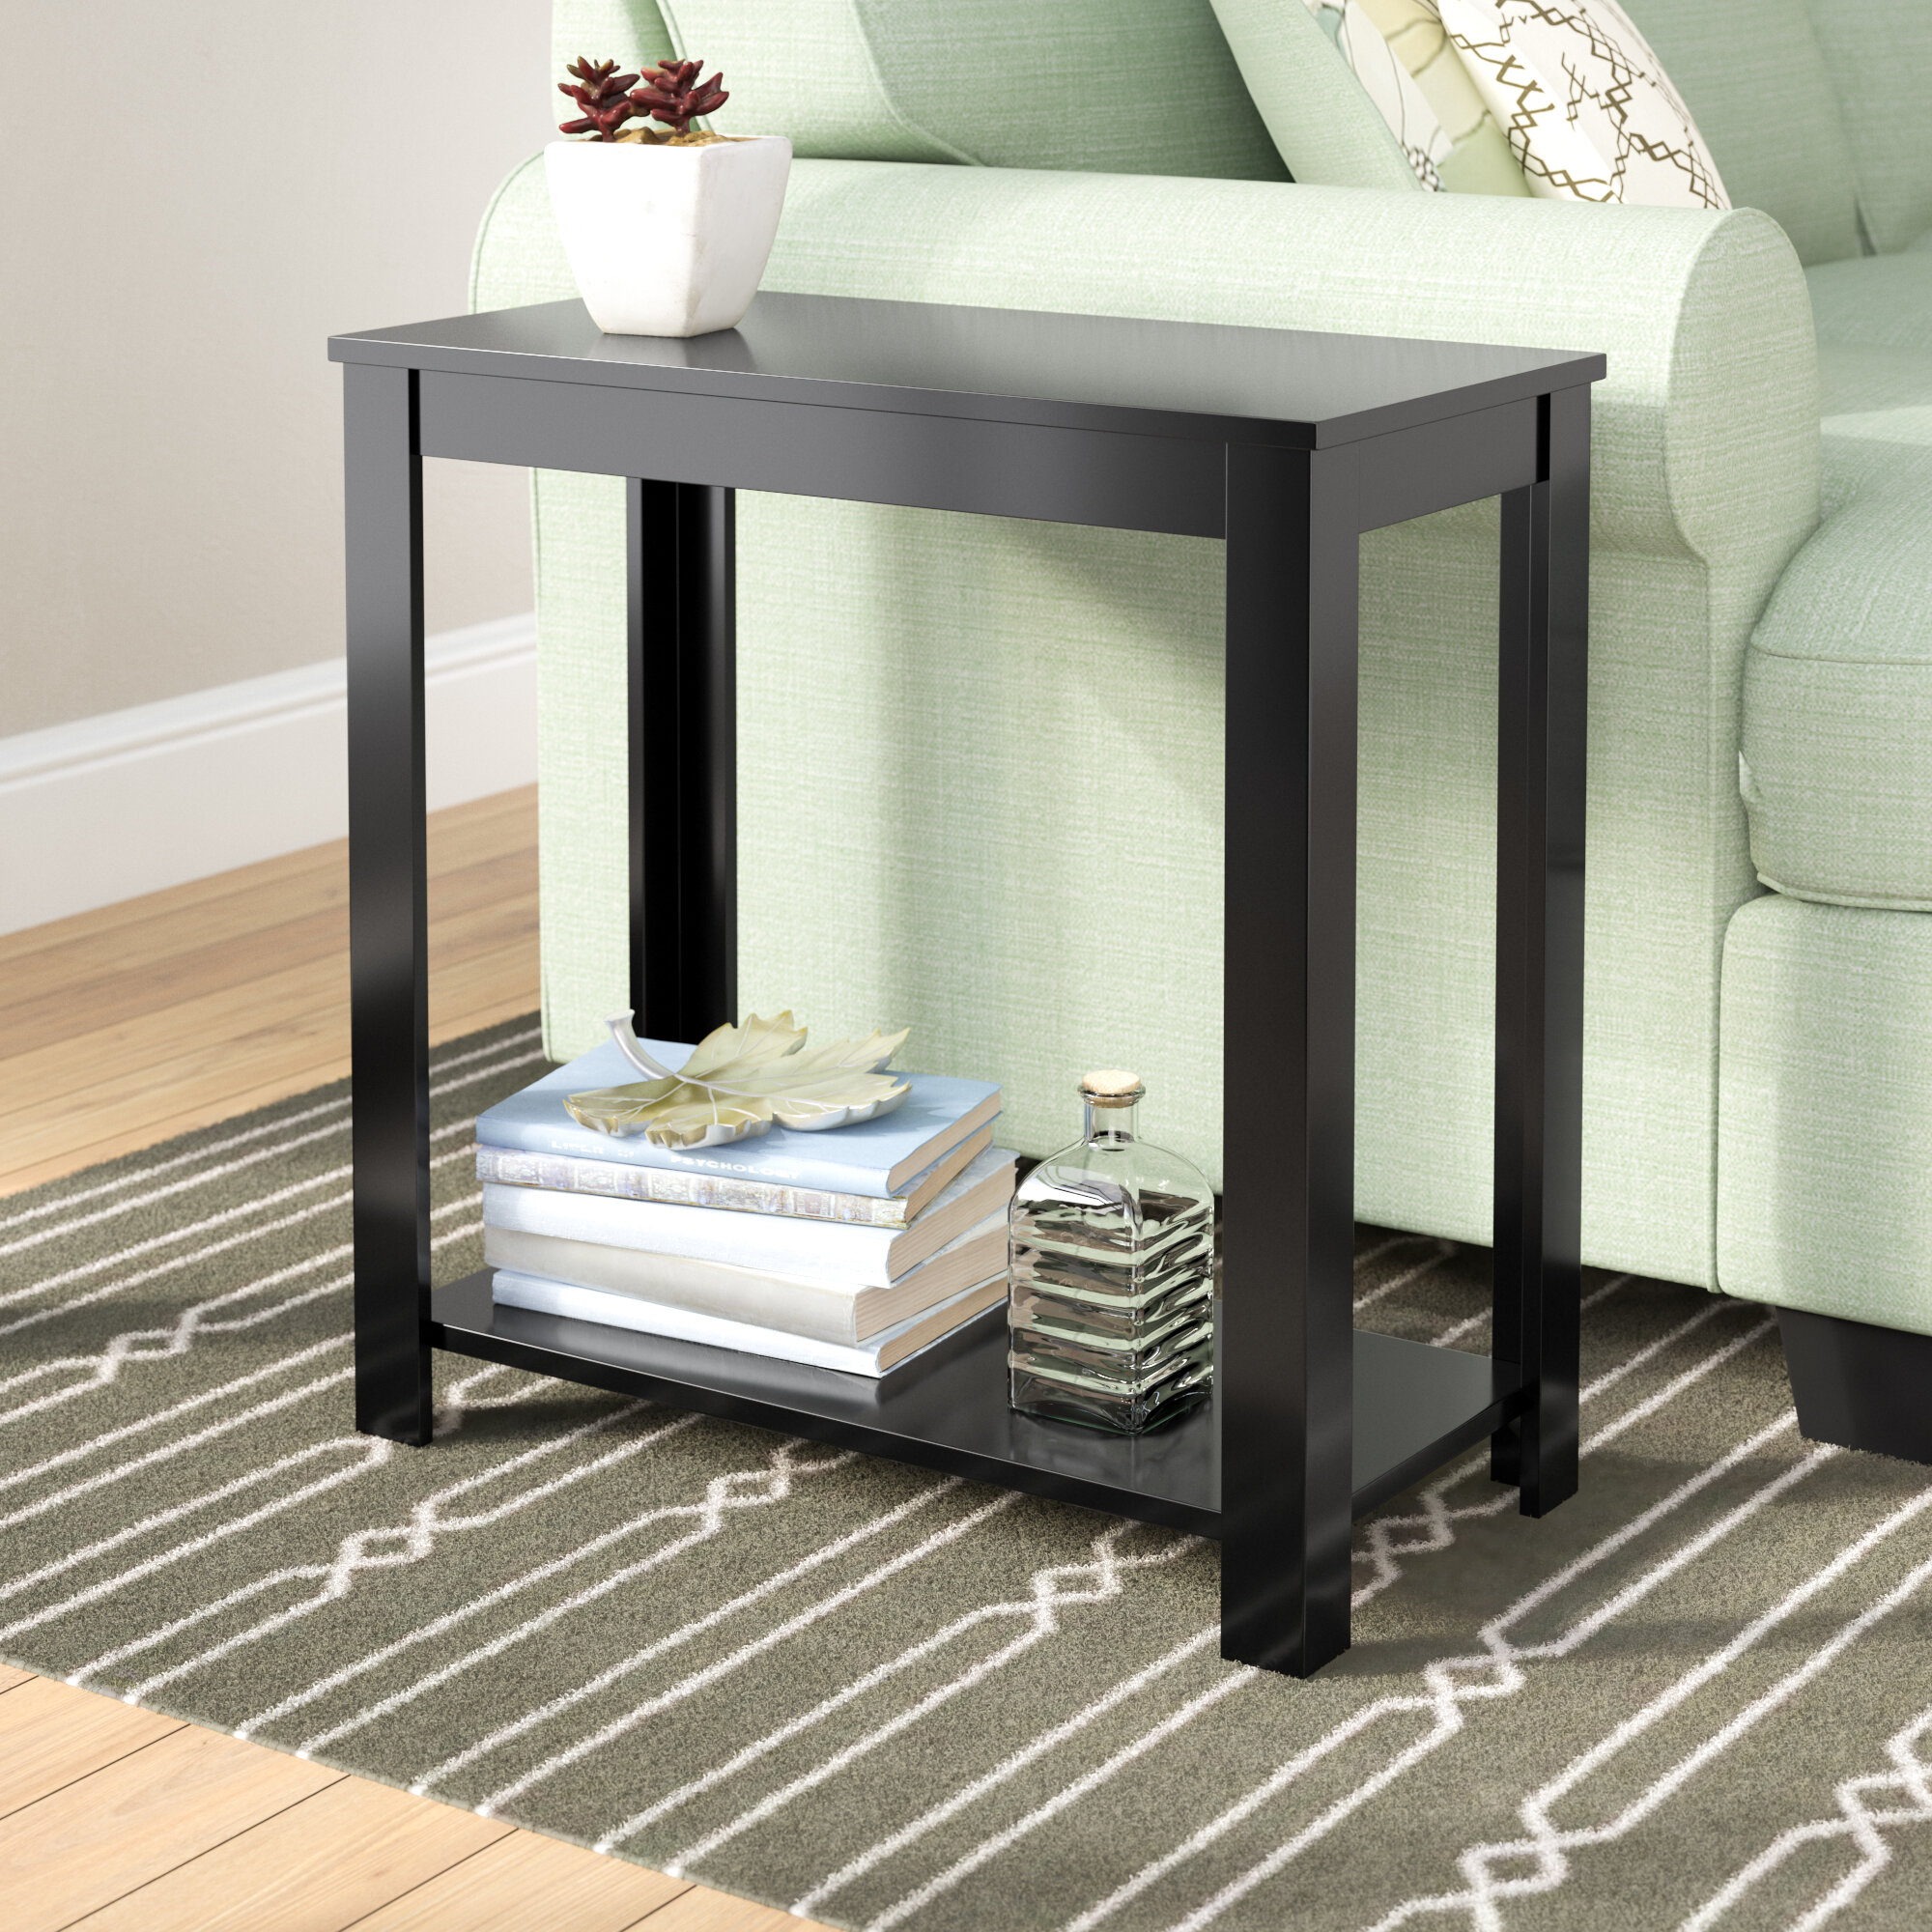 Sensational Pagano End Table Download Free Architecture Designs Rallybritishbridgeorg